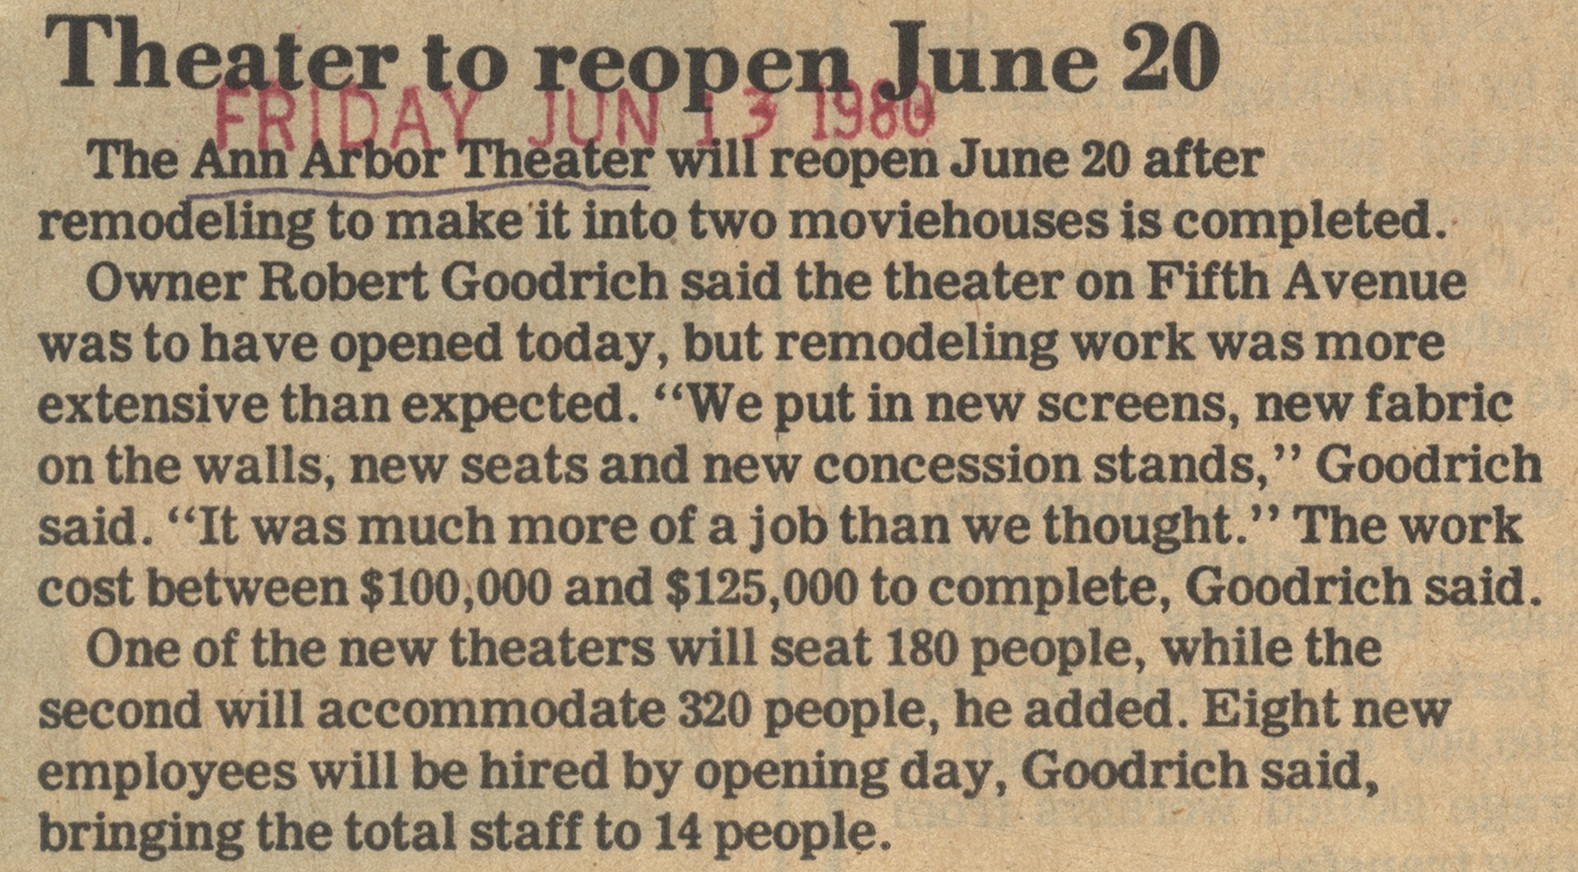 Theater To Reopen June 20 image